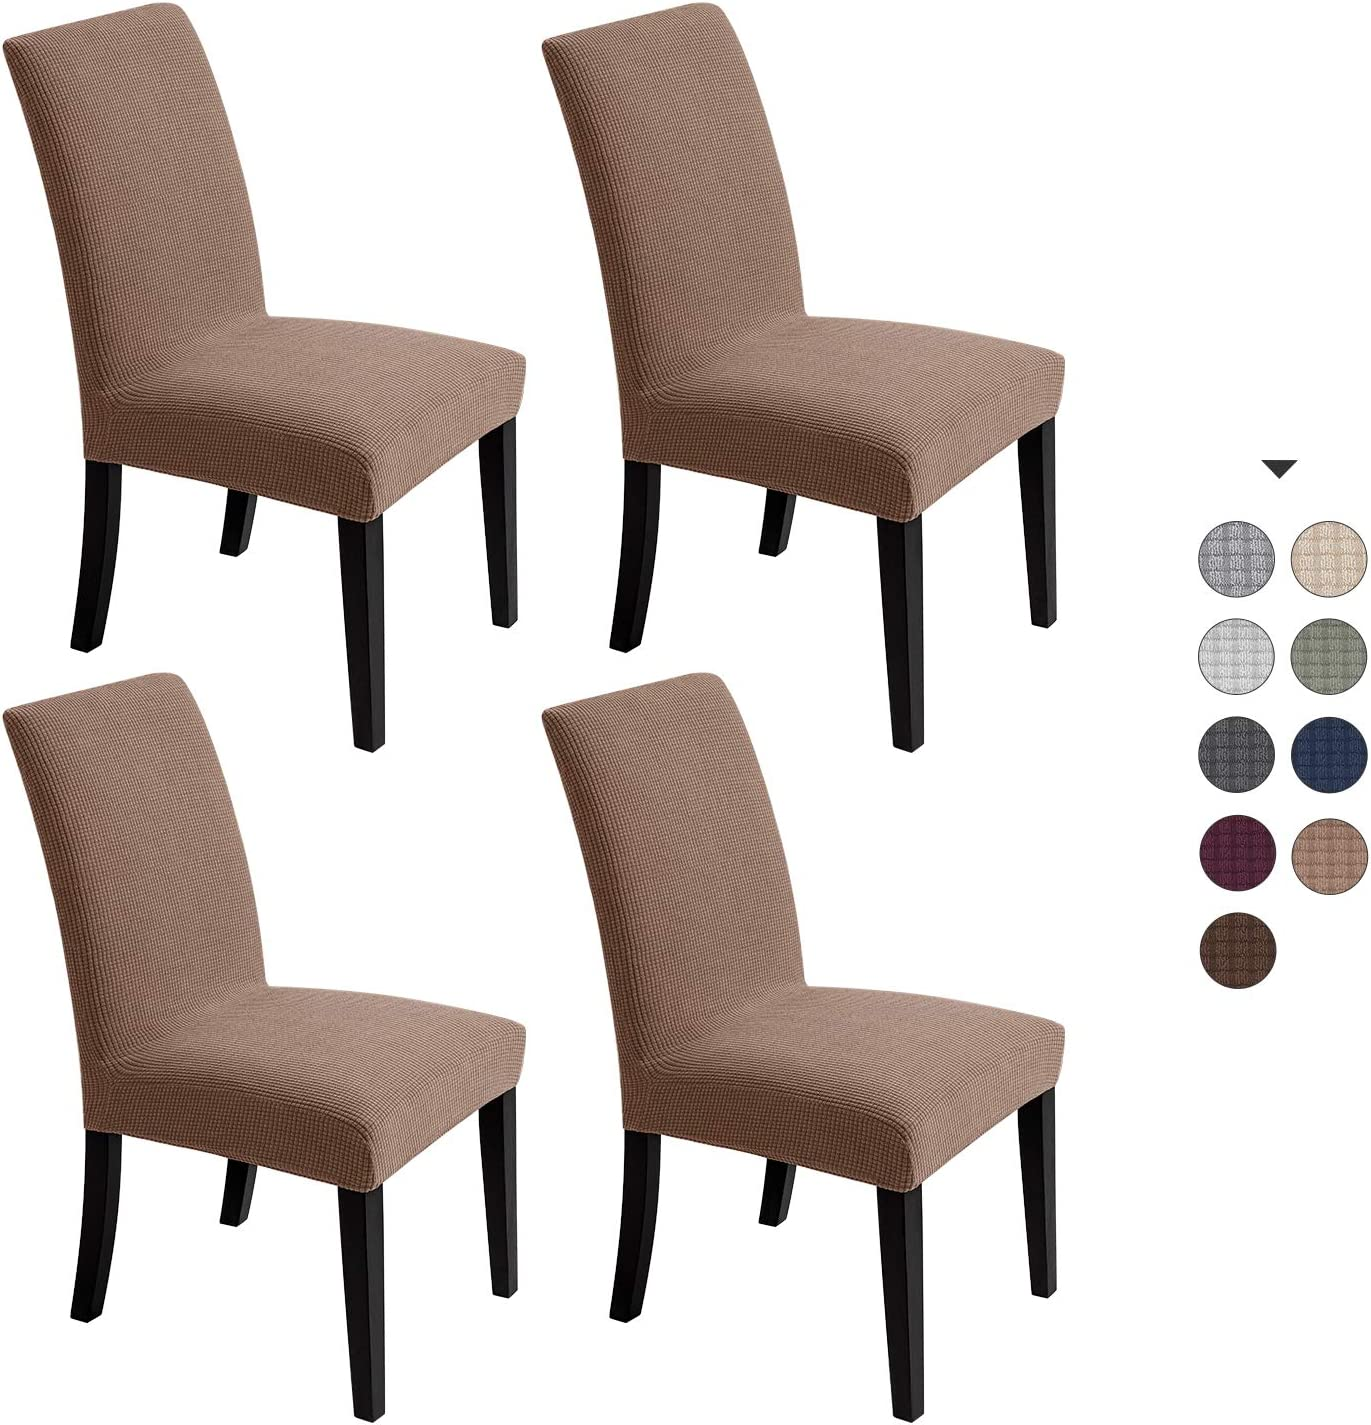 Chair Covers For Dining Room - Stretch Chair Slipcovers for Decorative Seat Protector Waterproof Armless Removable Washable Elastic Dinner Universal Spandex Solid Chair Slip Covers Set (Dark Khaki, 4)